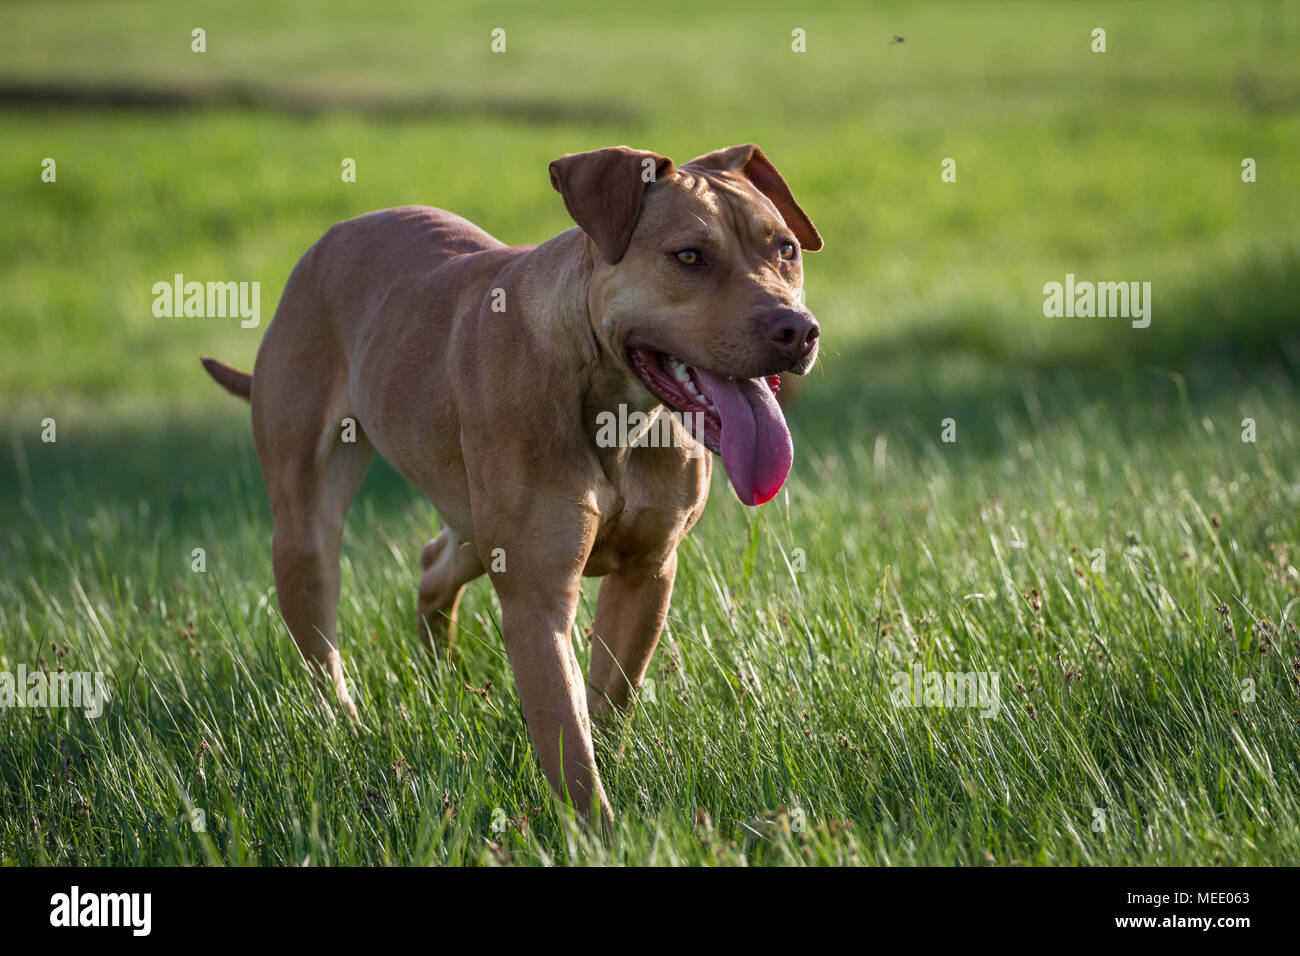 Working Pit Bulldog walking on a meadow on a sunny spring day - Stock Image